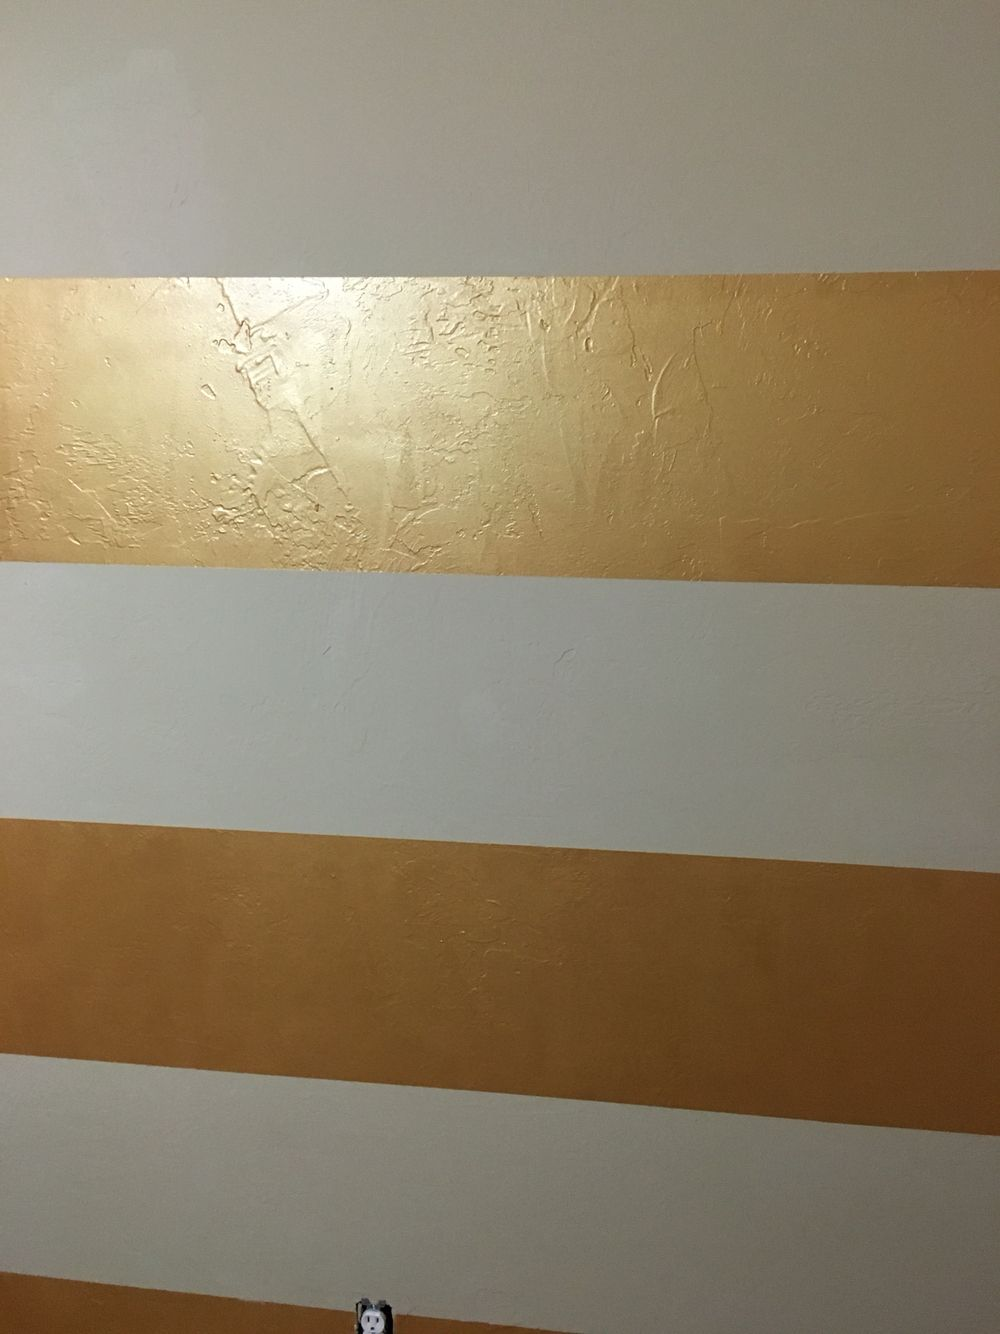 Sherwin Williams Metallic Impressions Gold Glaze In 2020 Metallic Gold Wall Paint Gold Painted Walls Gold Paint Colors Sherwin Williams